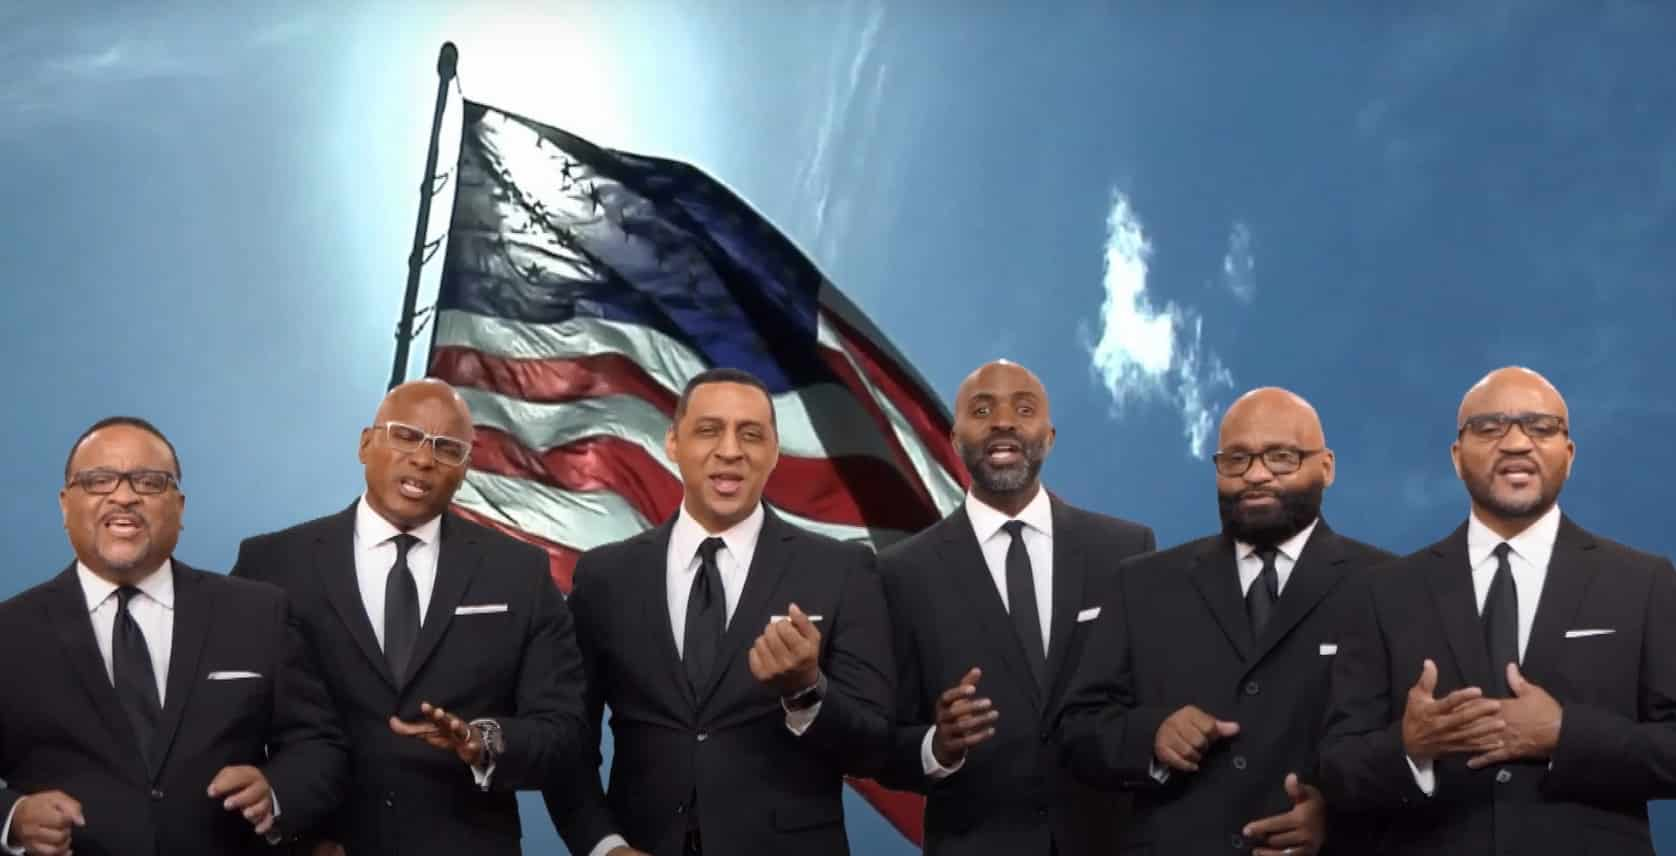 INDEPENDENCE DAY TRIBUTE: Keiser University Student and Fellow A Capella Band Members Share Their Version of the Star Spangled Banner